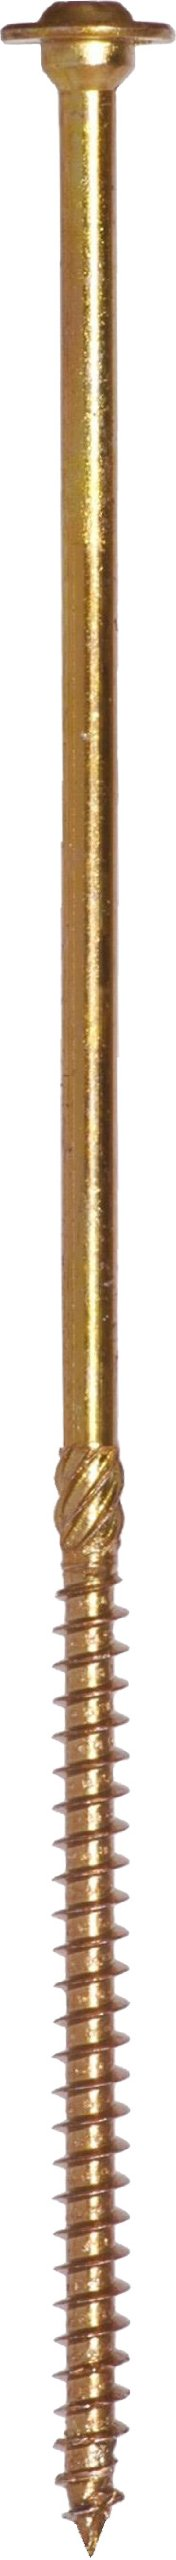 GRK 772691937353 RSS JTS 1-4 by 5-Inch Screw, 50 Pieces Per Handy Pack by GRK